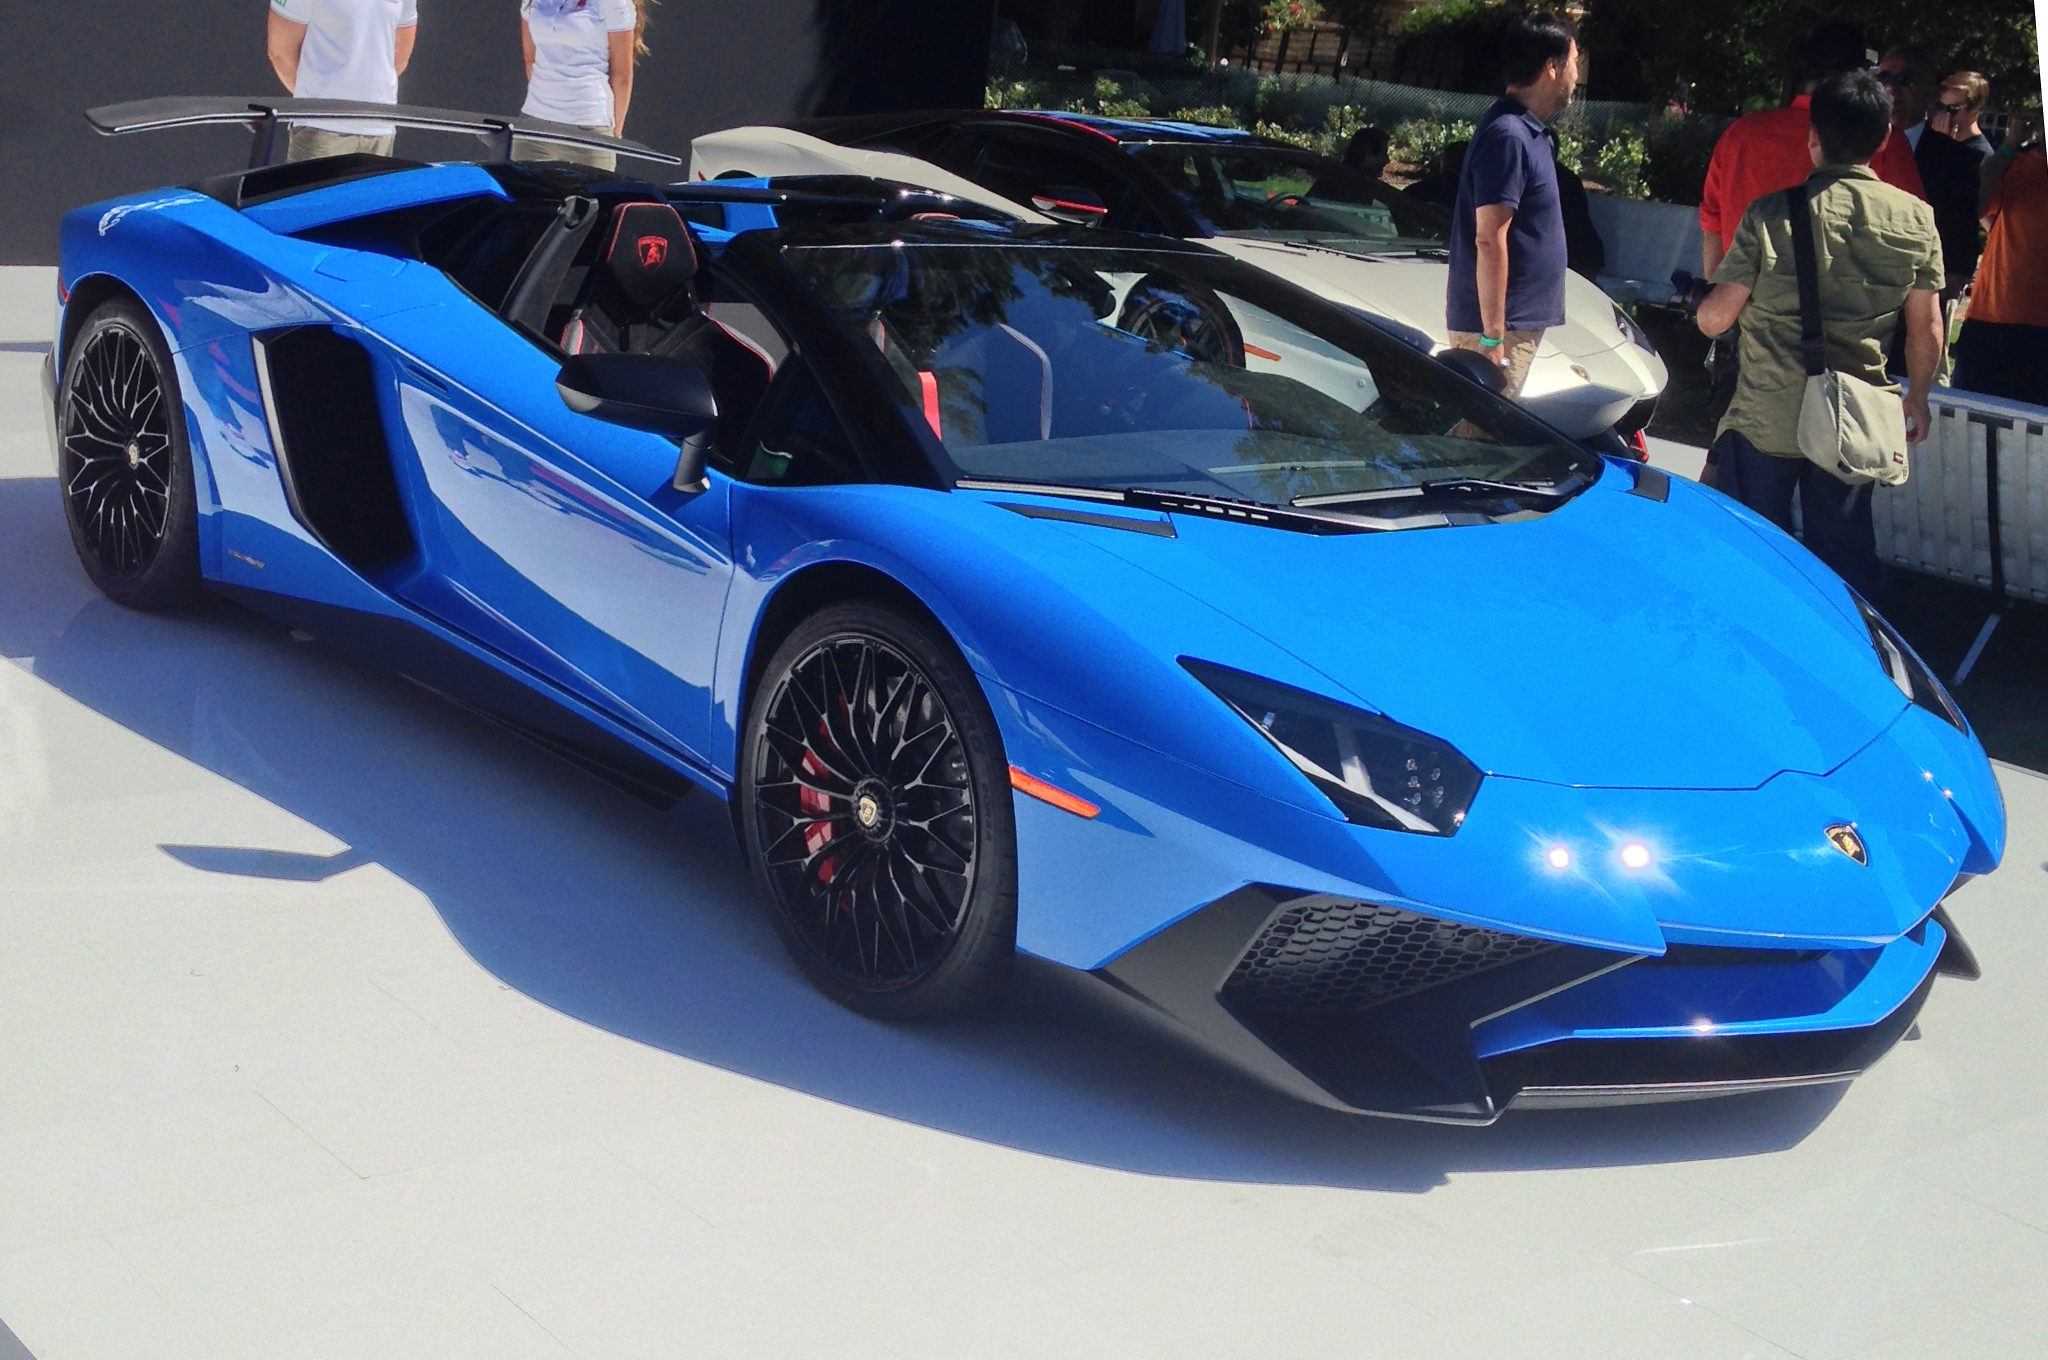 Lamborghini Aventador Sv Roadster Makes Stealth Debut In Monterey